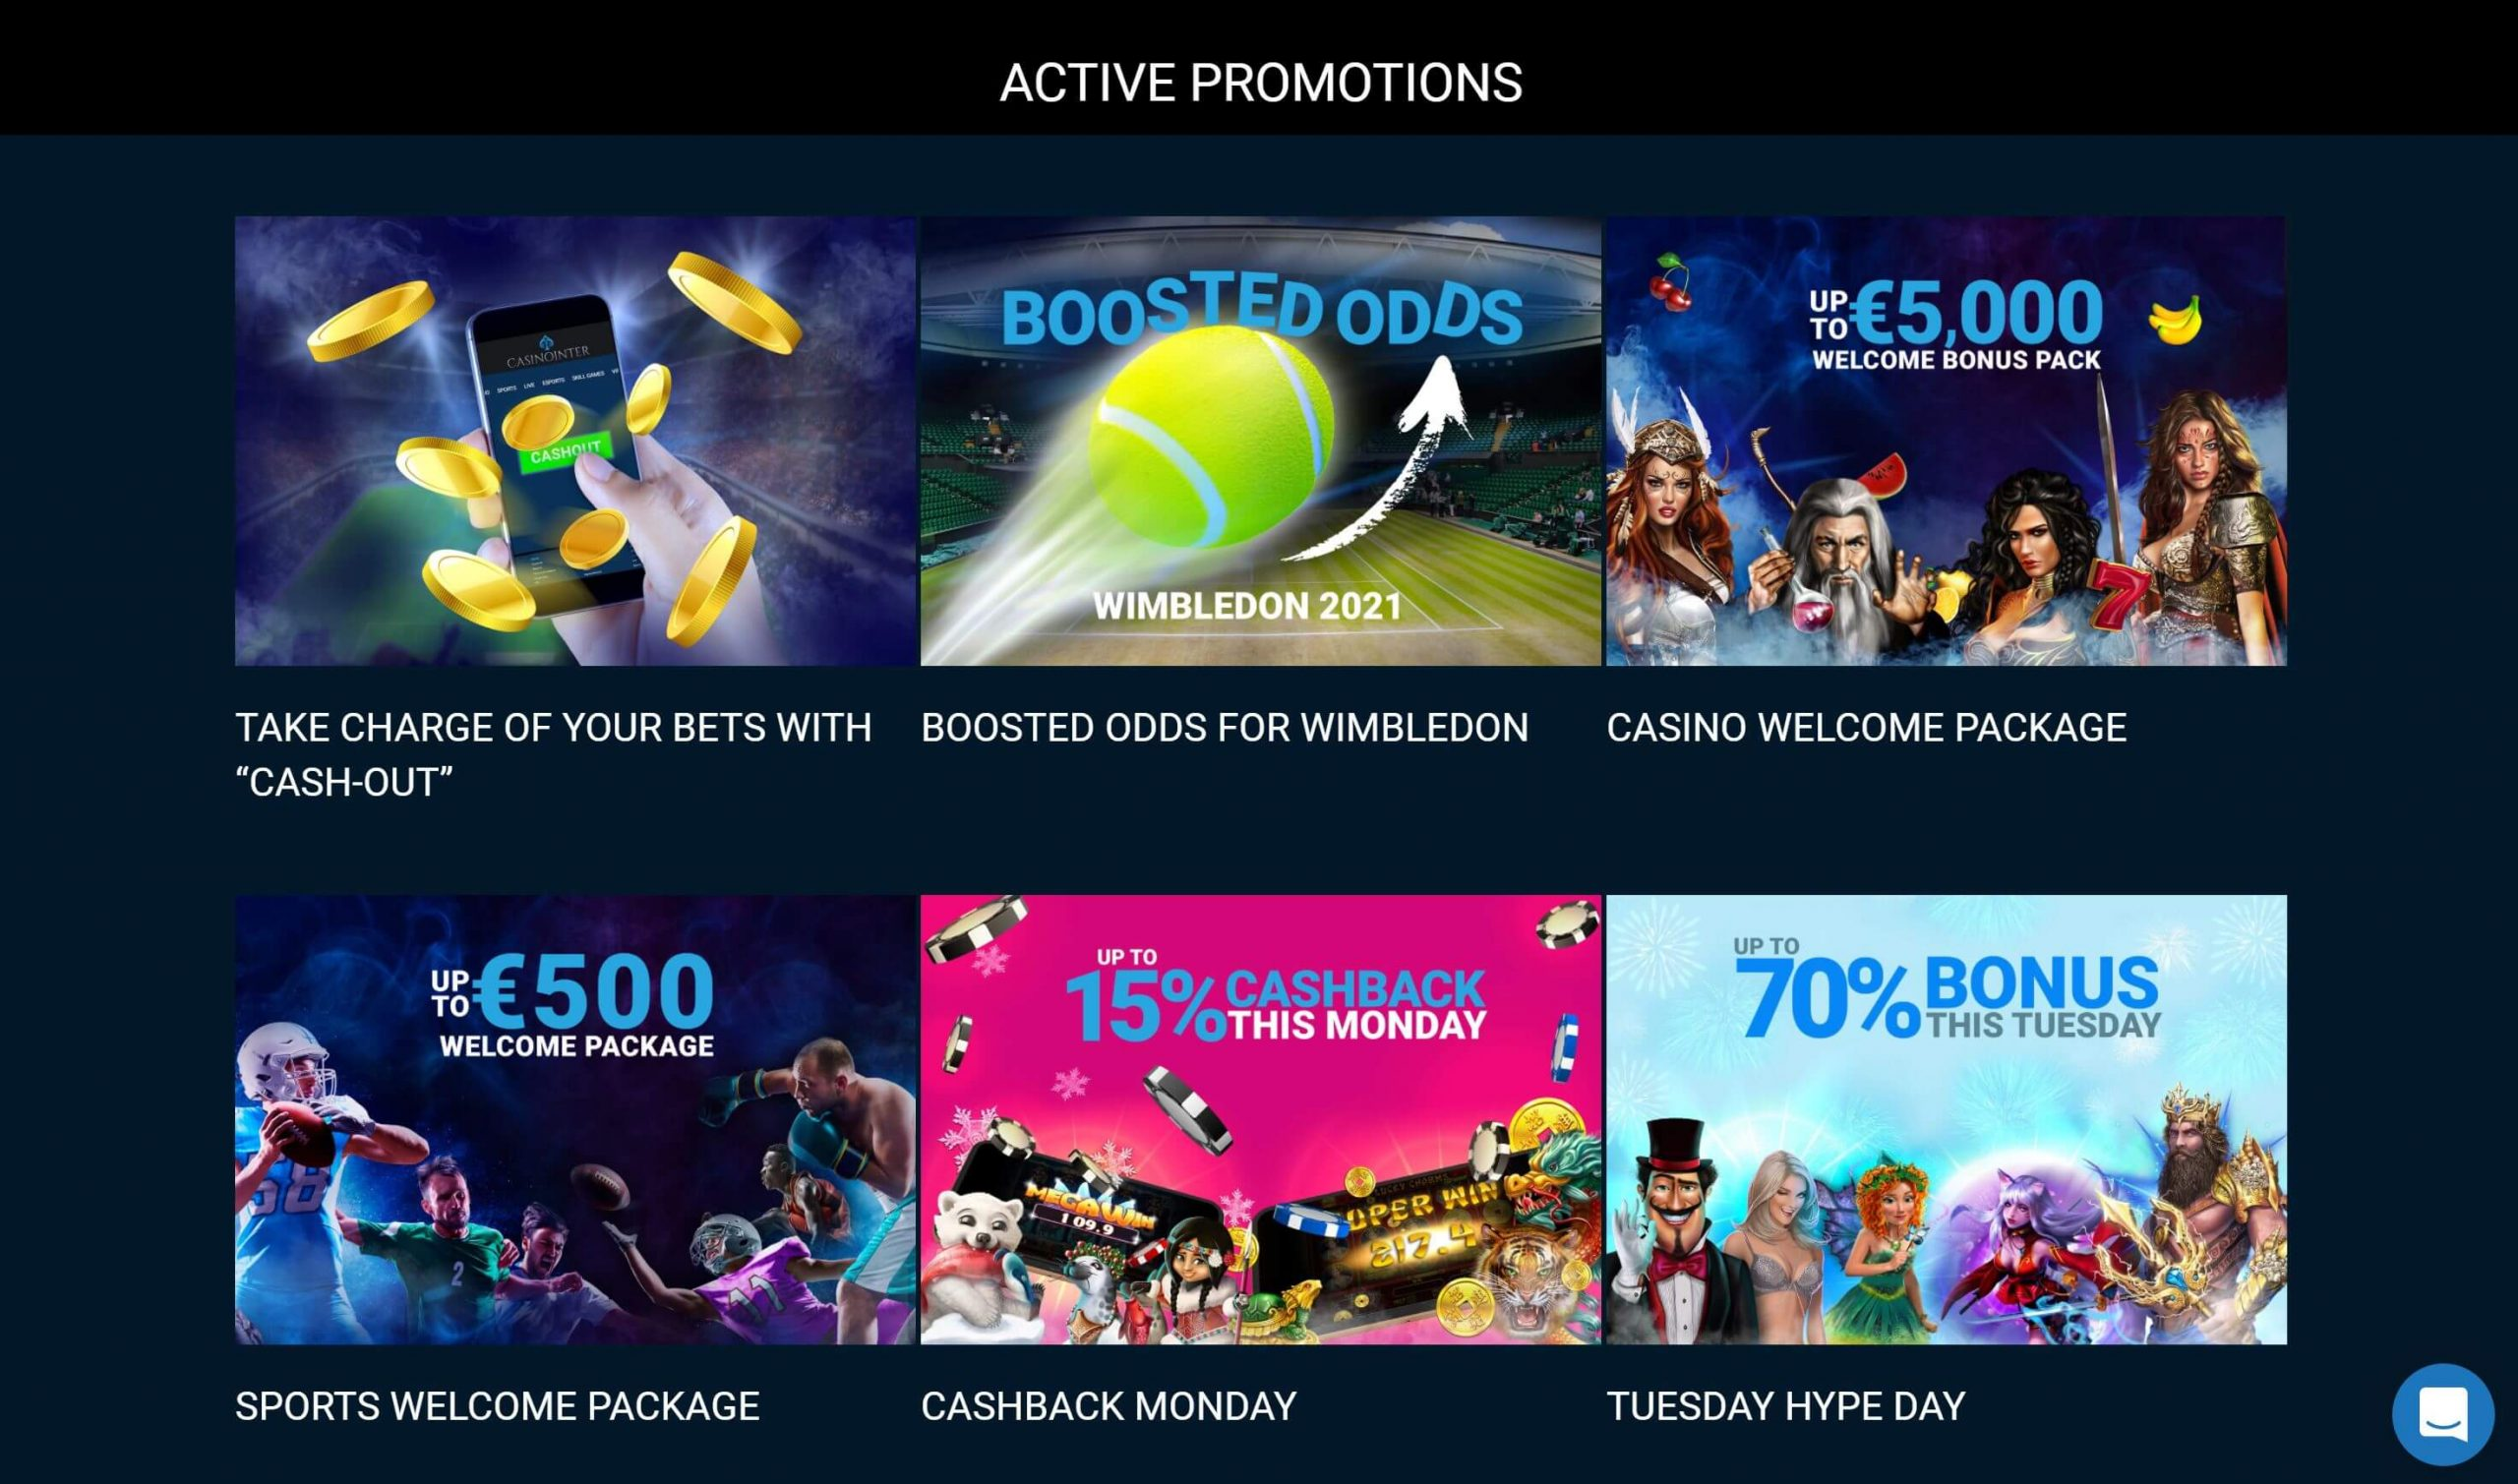 Casinointer Active Promotions